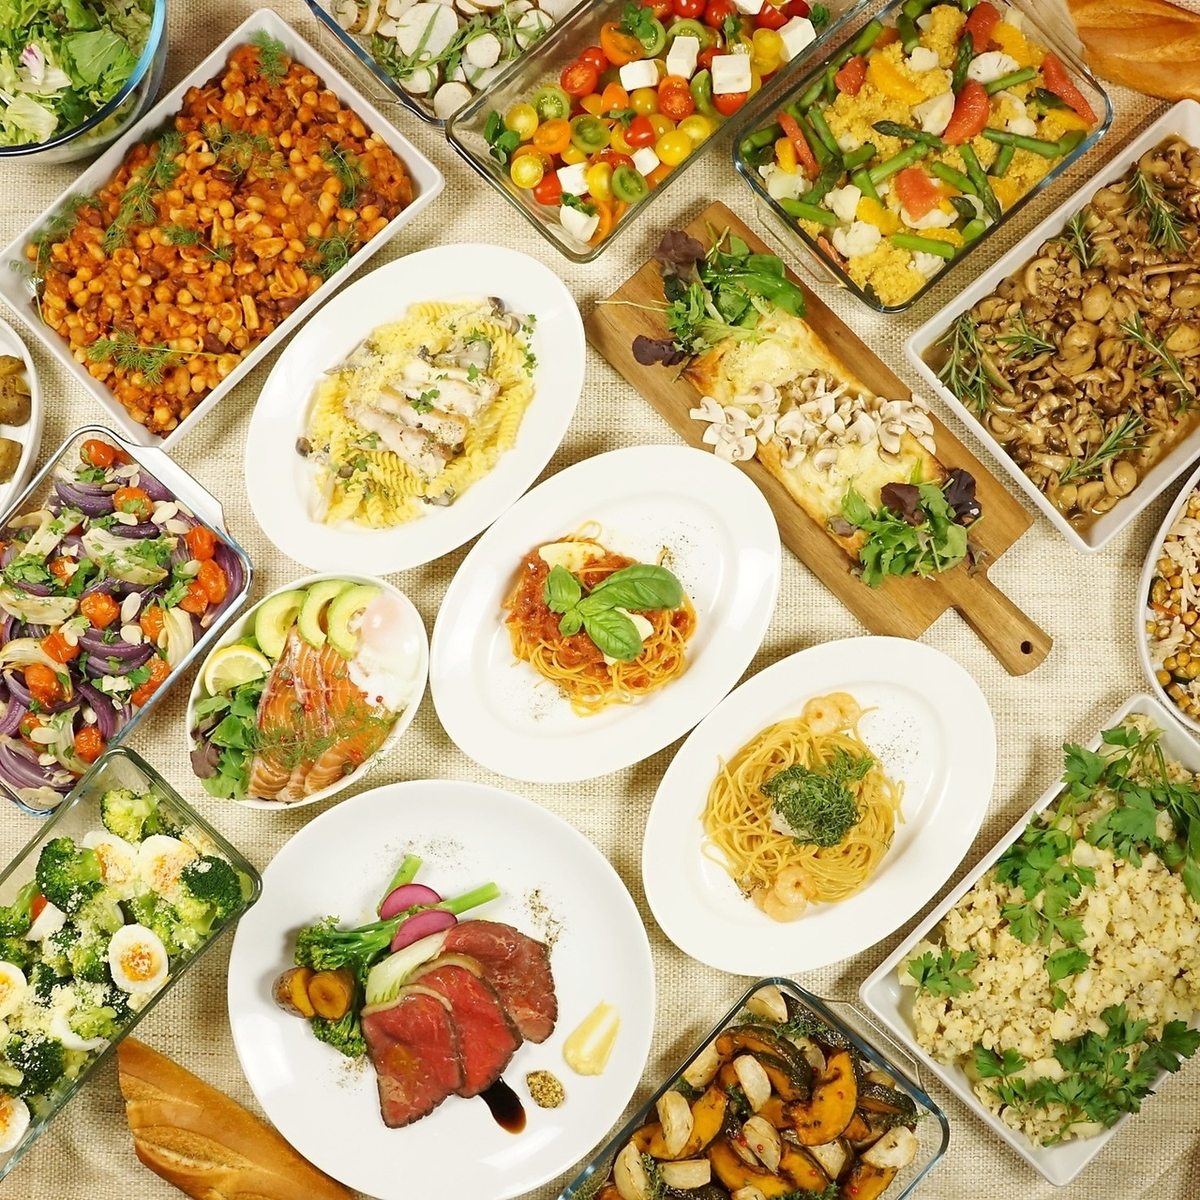 【Lunch party plan】 Salad bar · Side buffet · 120 minutes with all you can drink! Enjoy special pasta and main dish